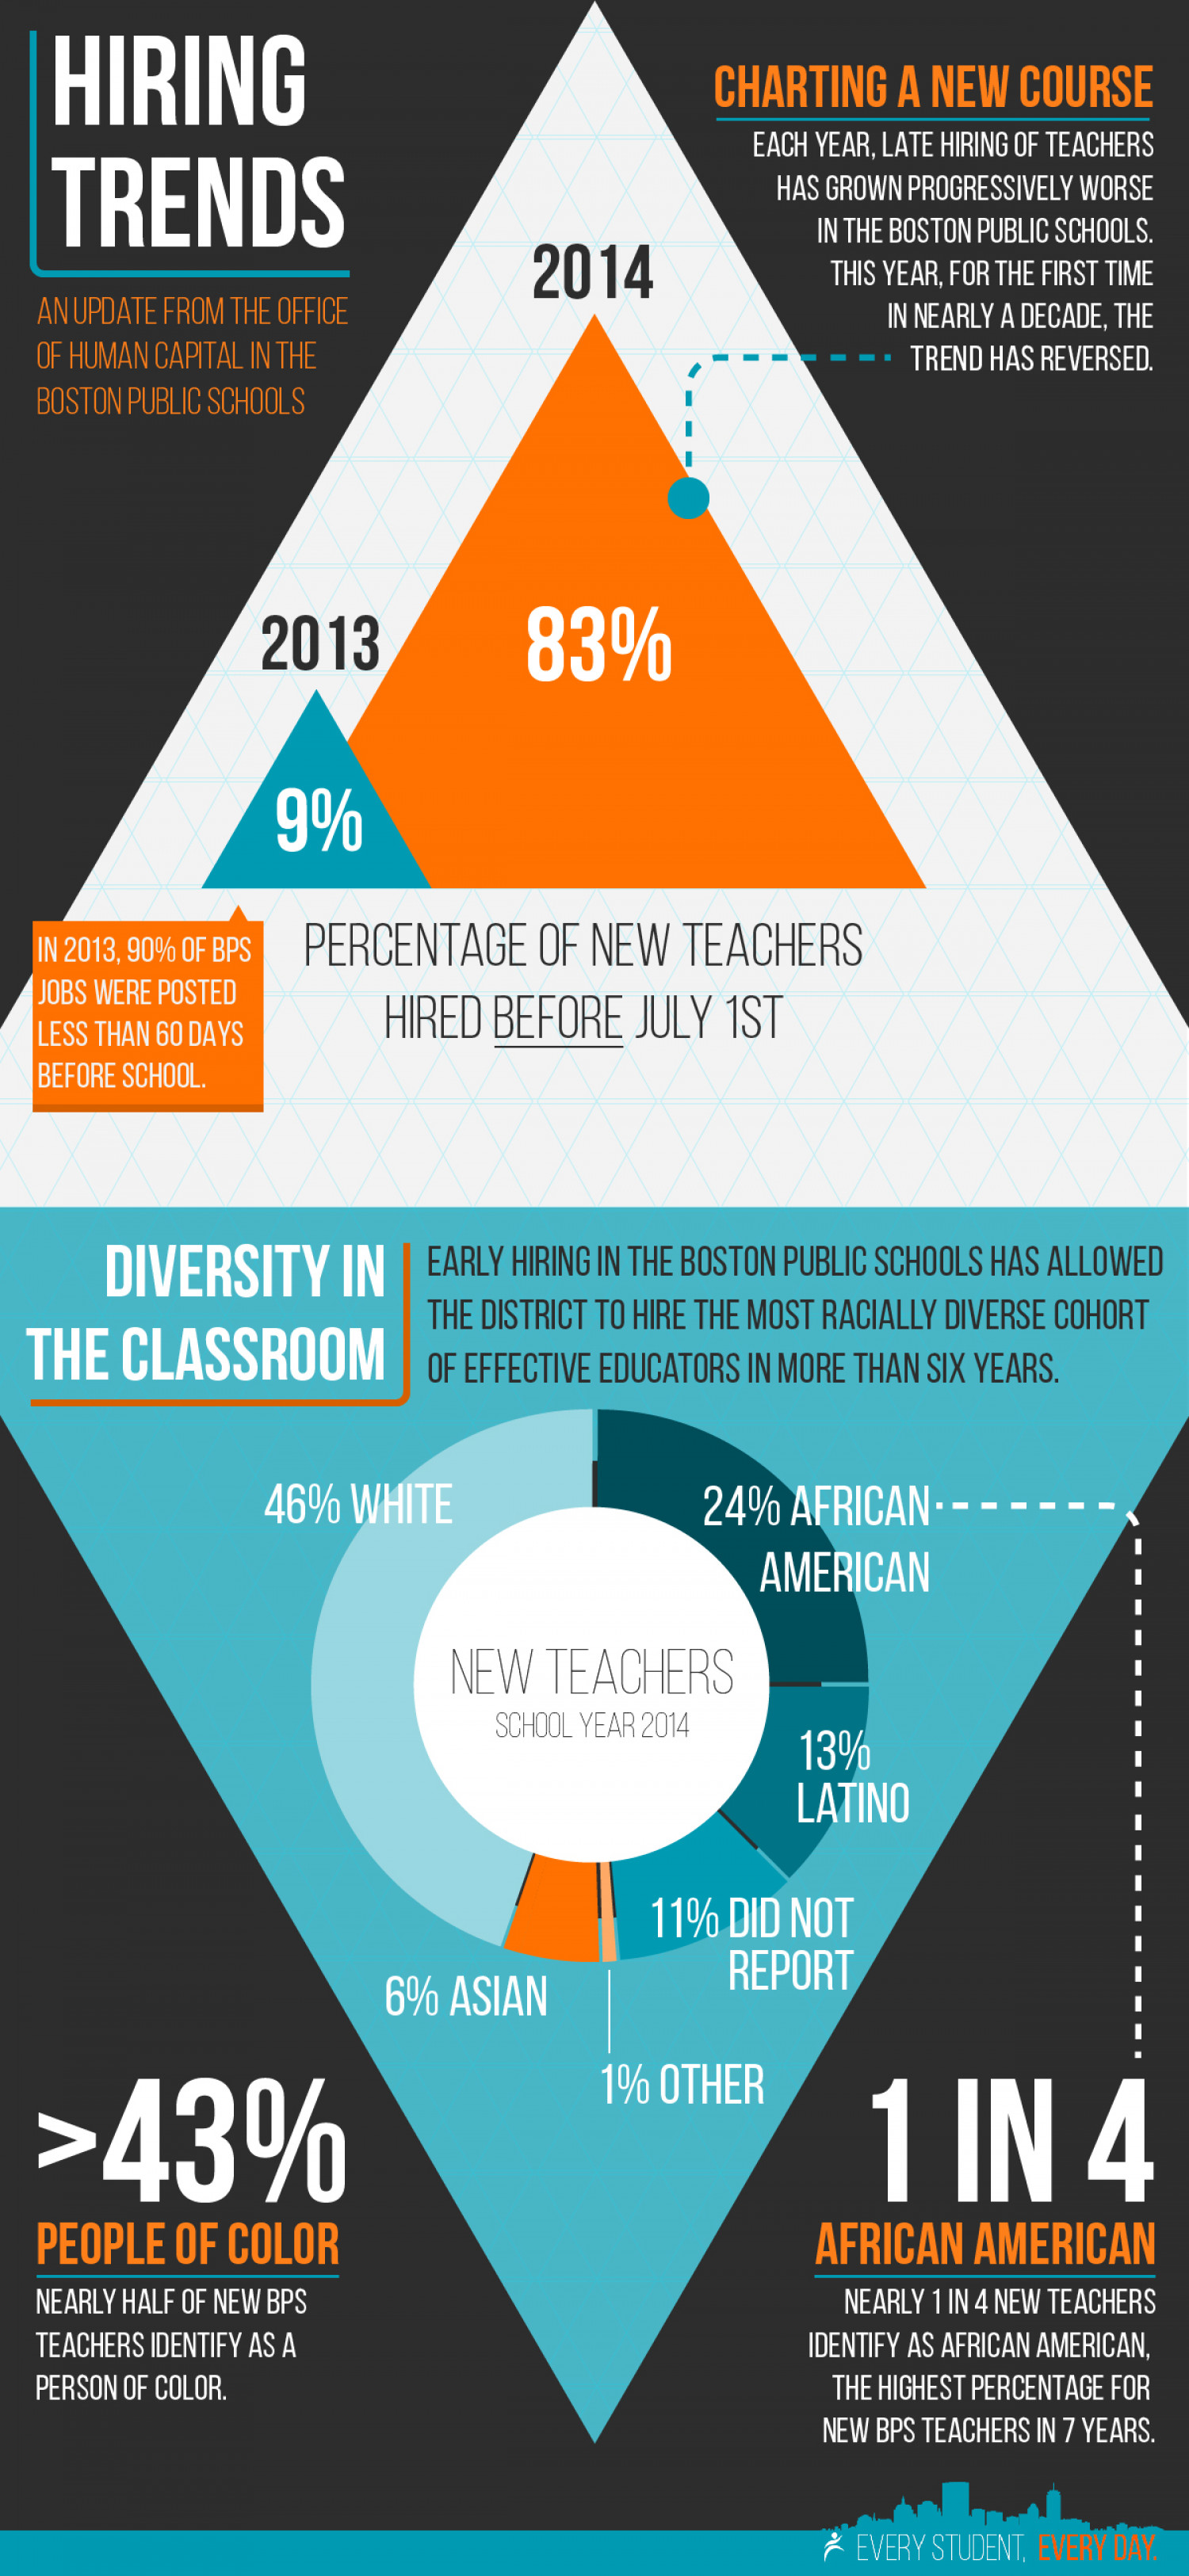 Boston Public Schools Hiring Trends 2014 Infographic